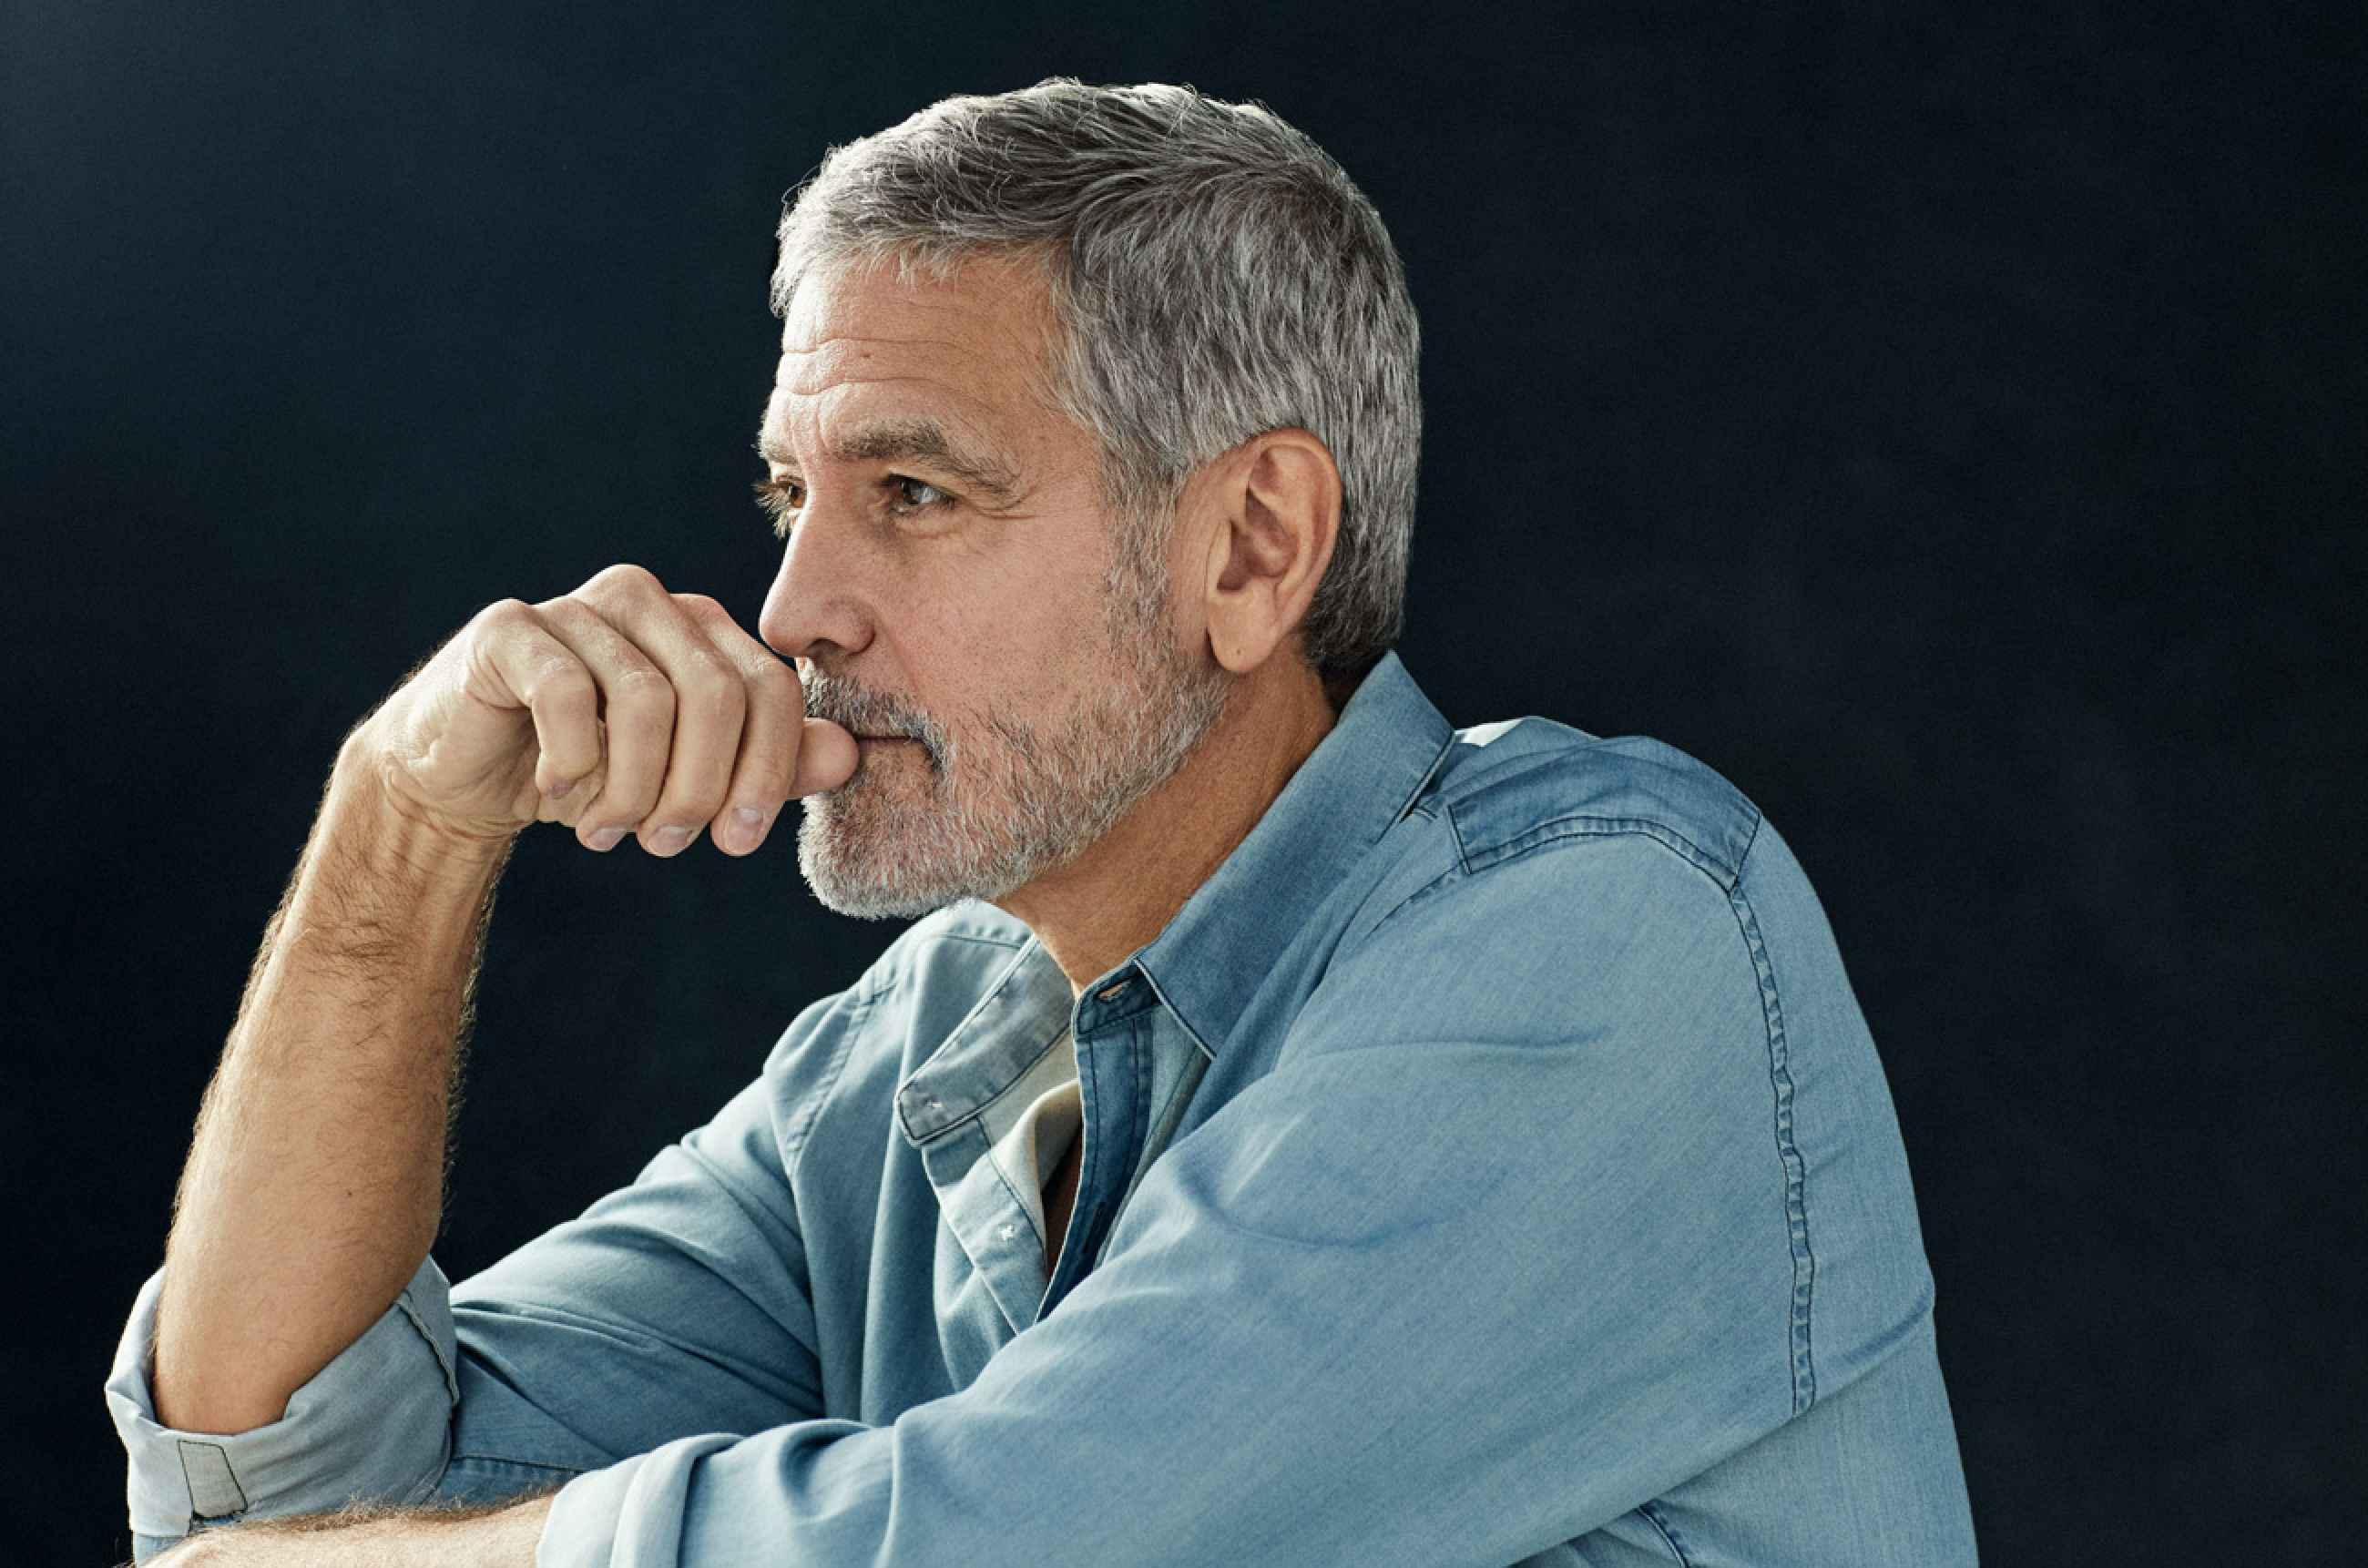 George Clooney looking pensive against a black background. Don't you ever wonder if he's thinking of you?